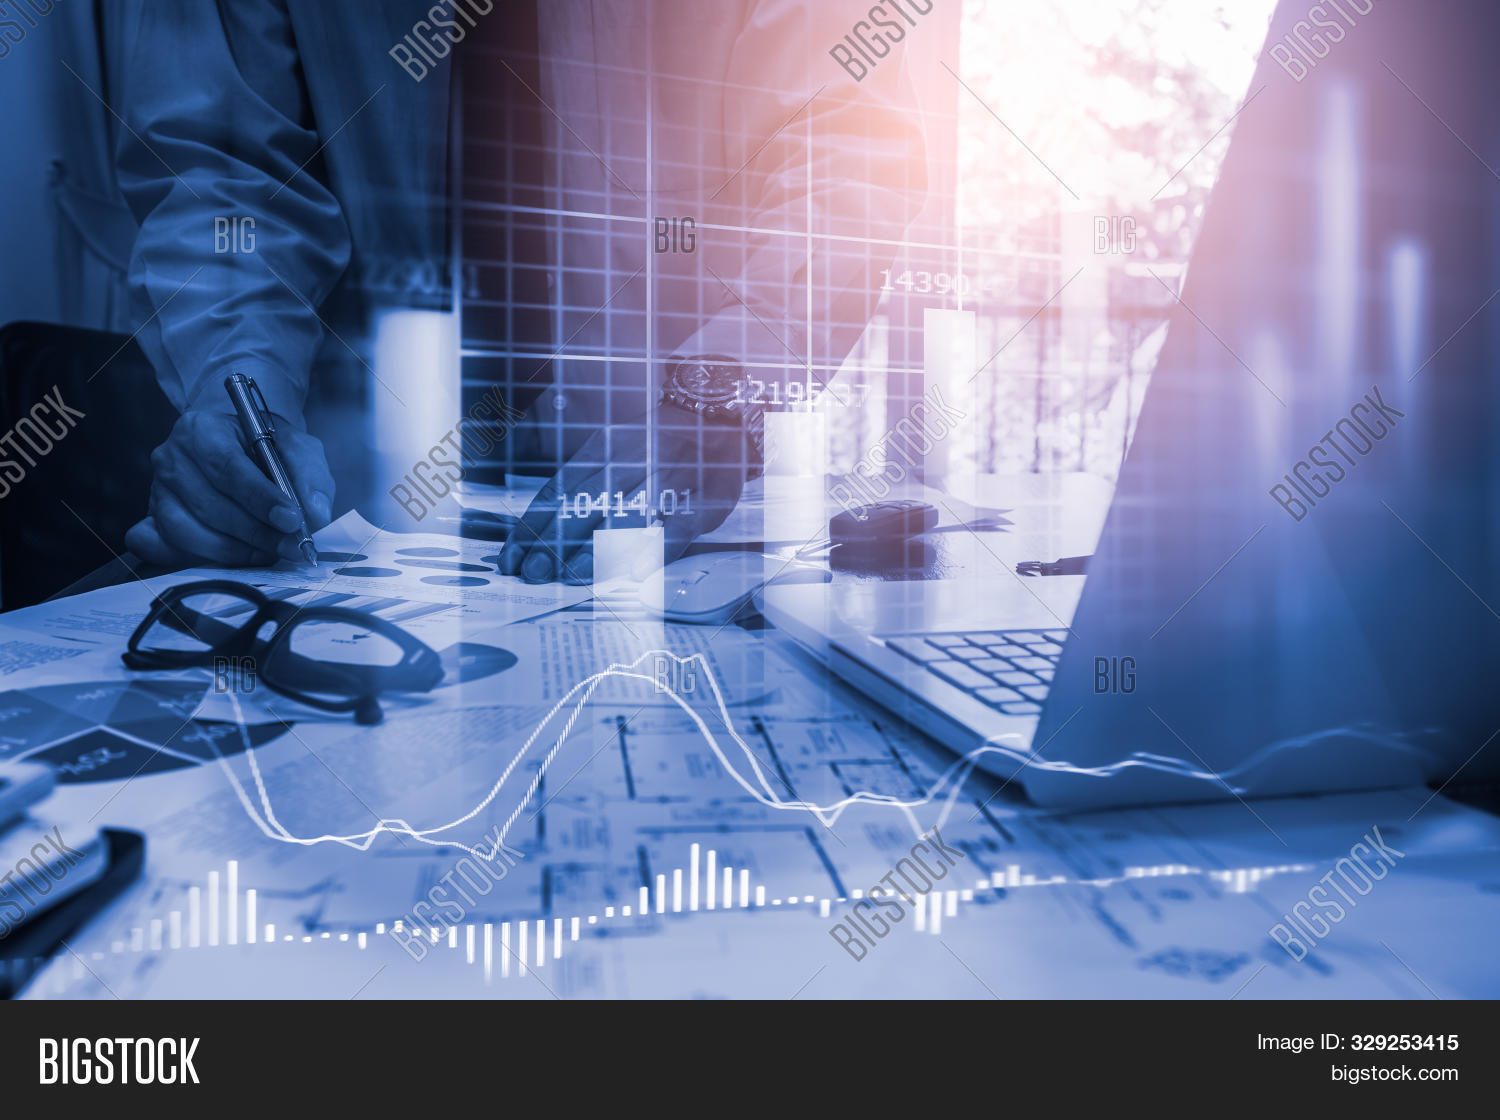 abstract,accounting,advertise,analysis,background,bank,business,chart,commercial,concept,cost,currency,data,digital,earning,economy,exchange,exchanging,finance,financial,financier,forex,funding,funds,graph,growth,index,indicator,information,investment,management,market,marketing,money,monitor,profit,props,rate,saving,sell,statistic,stock,stockmarket,technology,ticker,trade